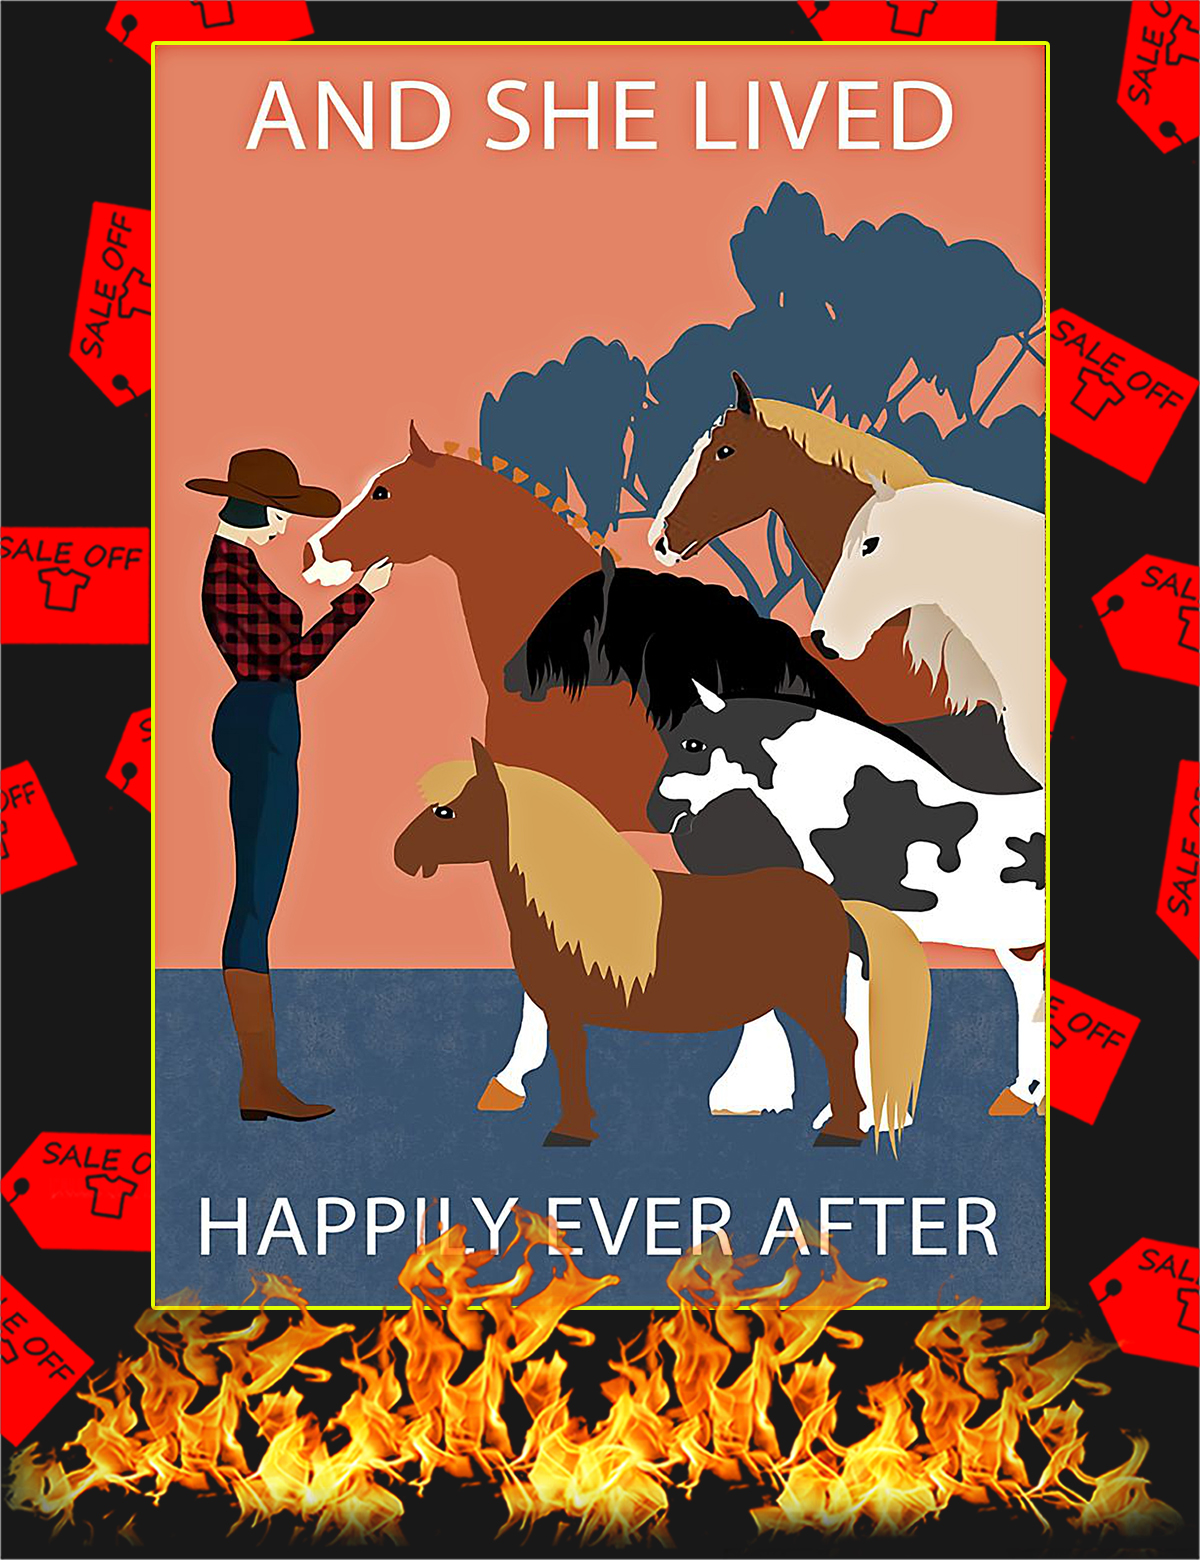 Horses And she lived happily ever after poster - A4